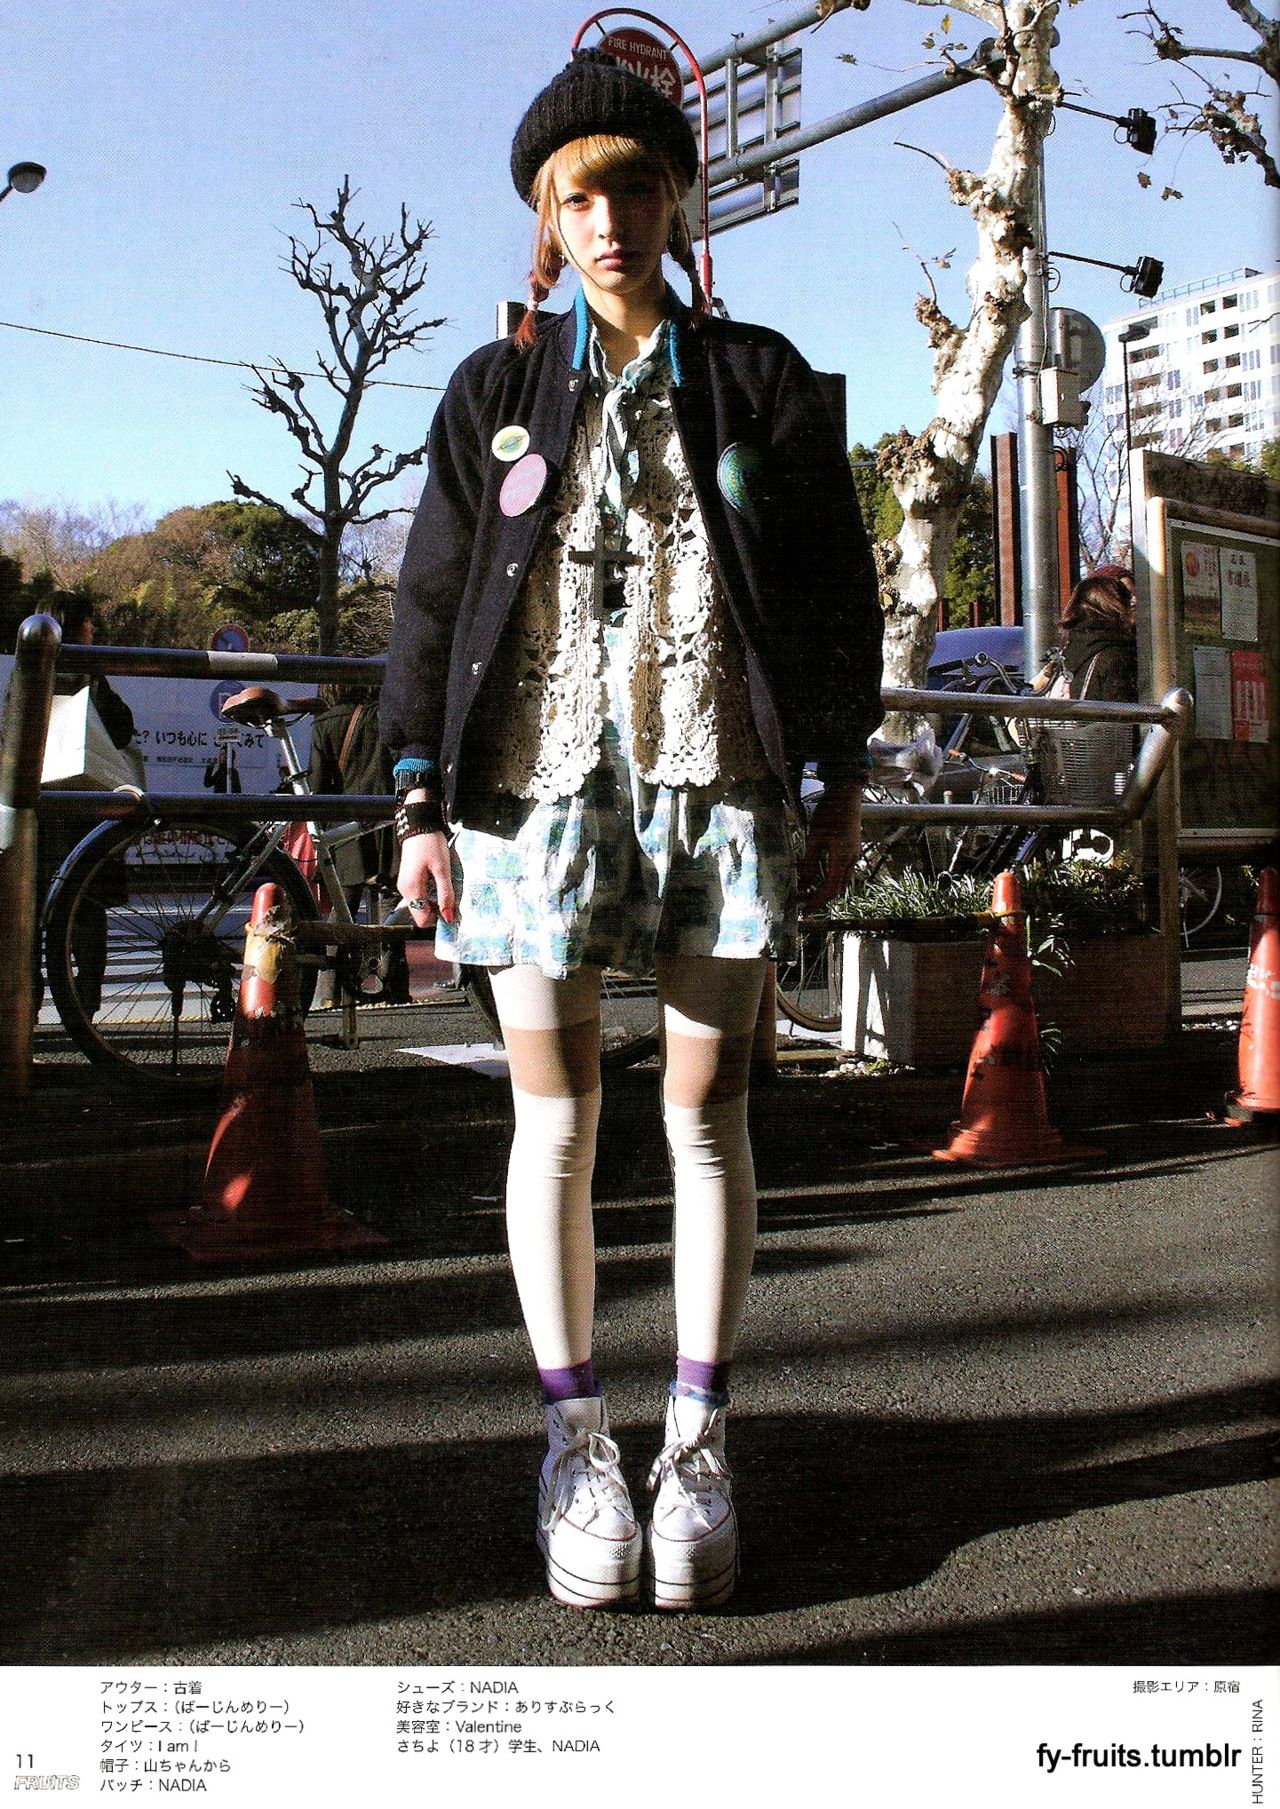 Fruits Magazine - Street Fashion Japan The shoes. I need the shoes